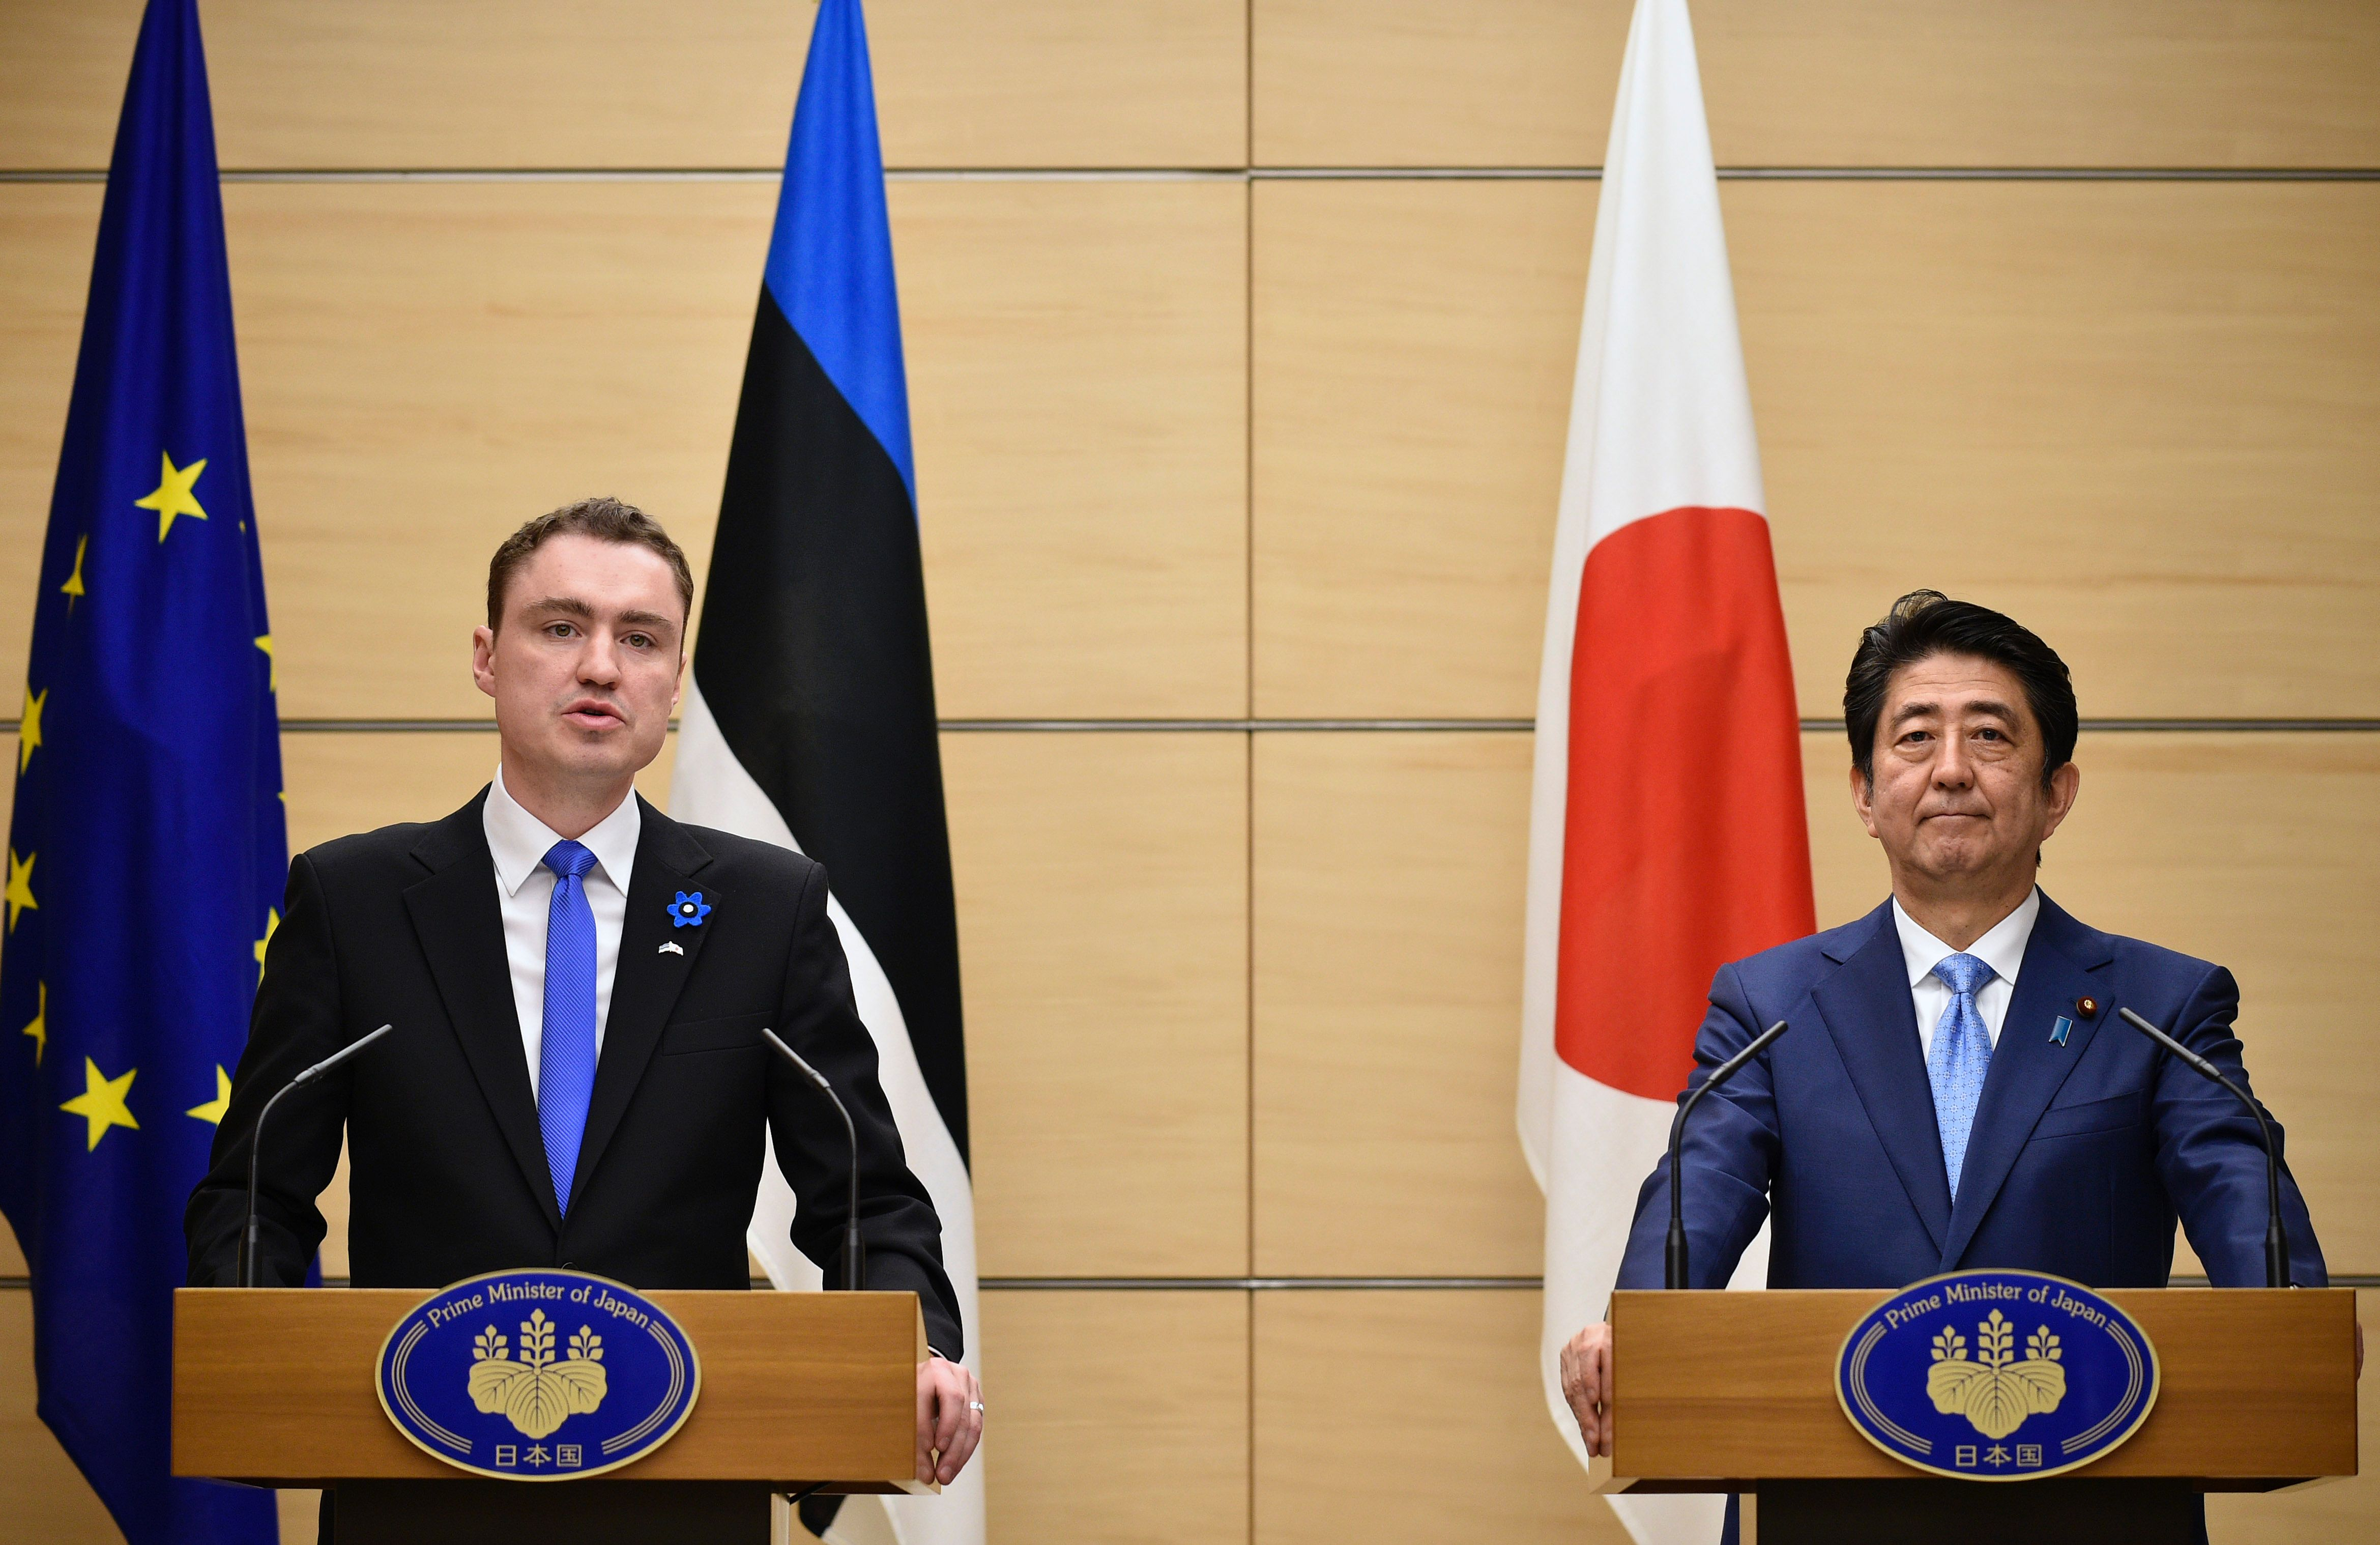 Estonian Prime Minister Taavi Roivas and Prime Minister Shinzo Abe hold a joint news conference at Abe's official residence in Tokyo on Friday. Roivas is on a six-day visit to Japan. | AFP-JIJI